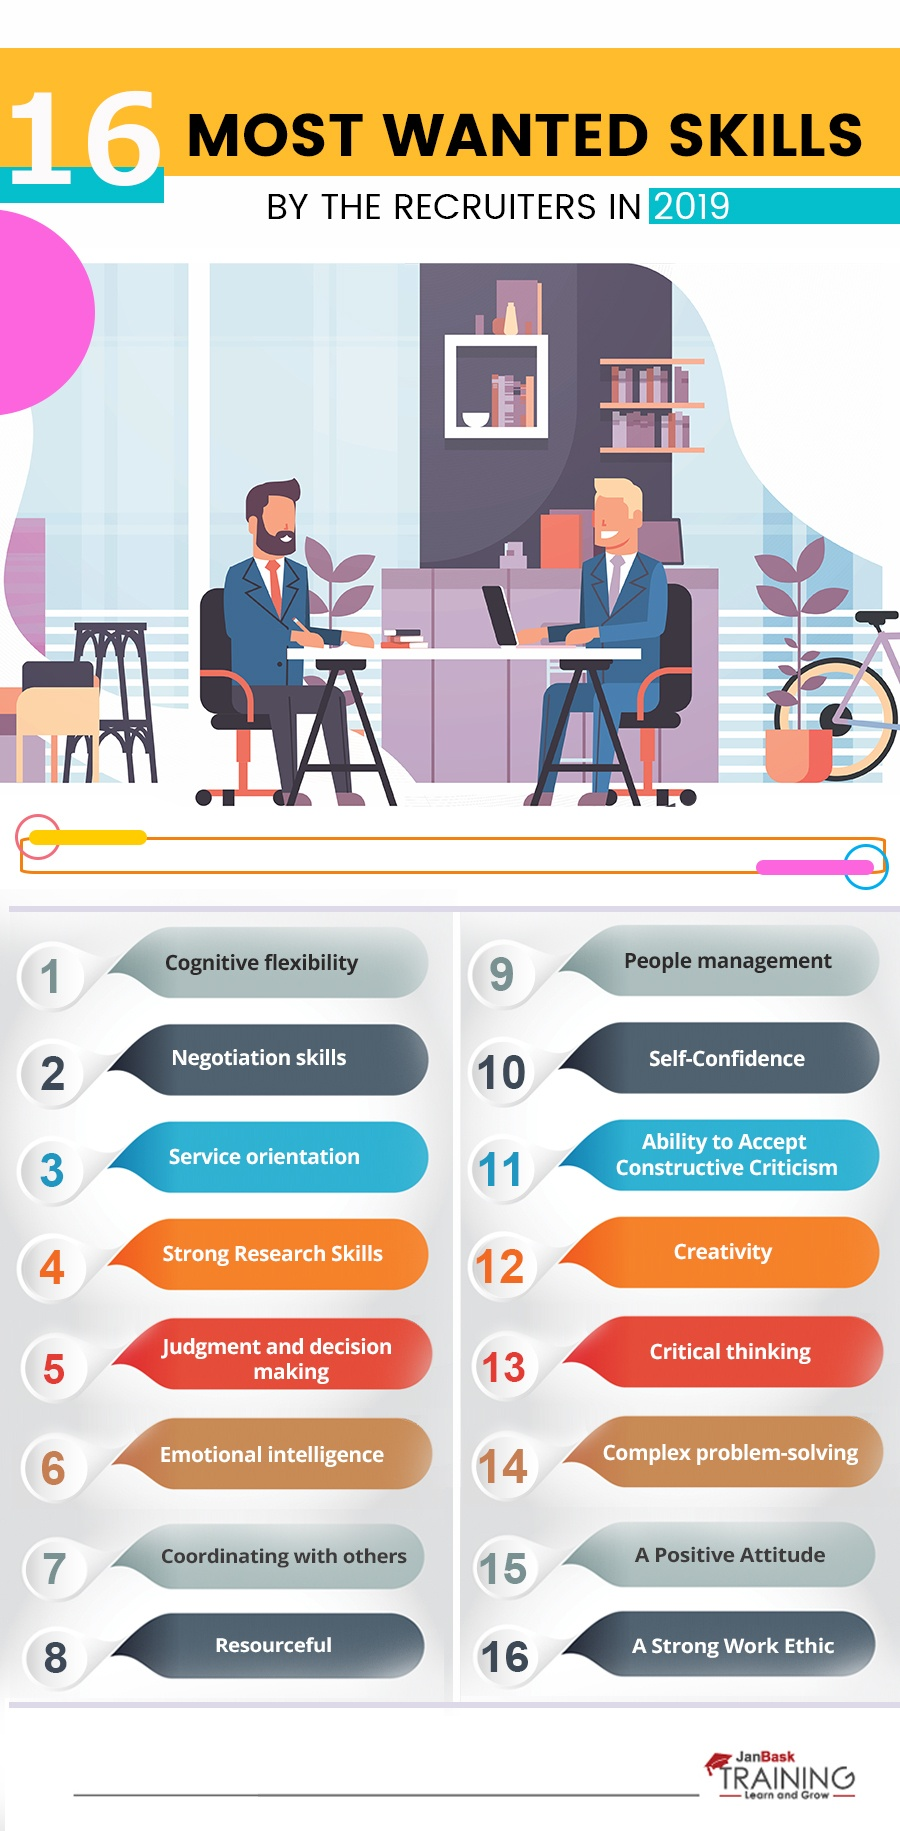 16 Most Wanted Skills By The Recruiters In 2019 Infographic